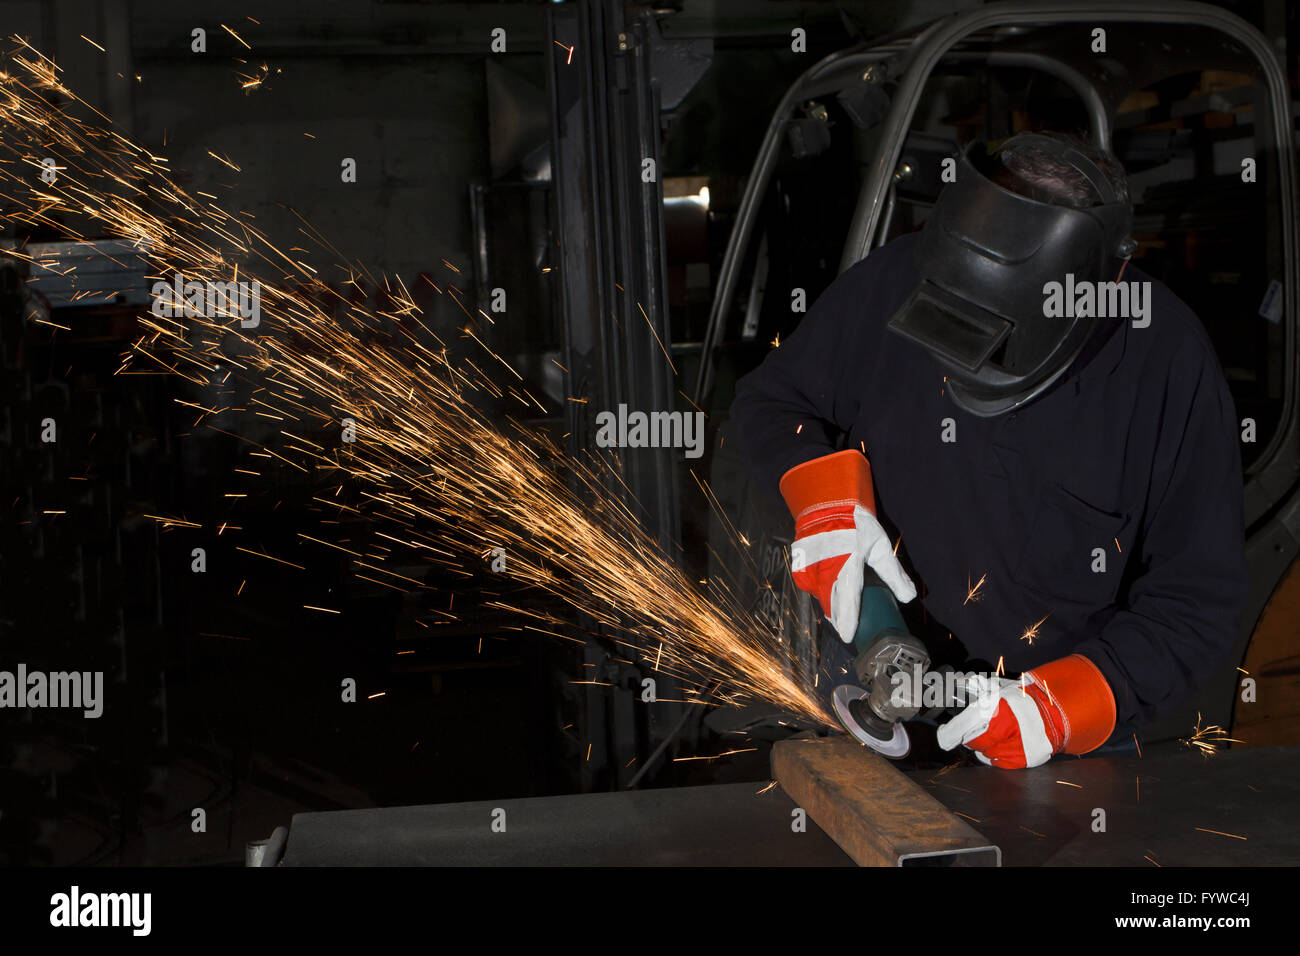 heavy industry - Stock Image